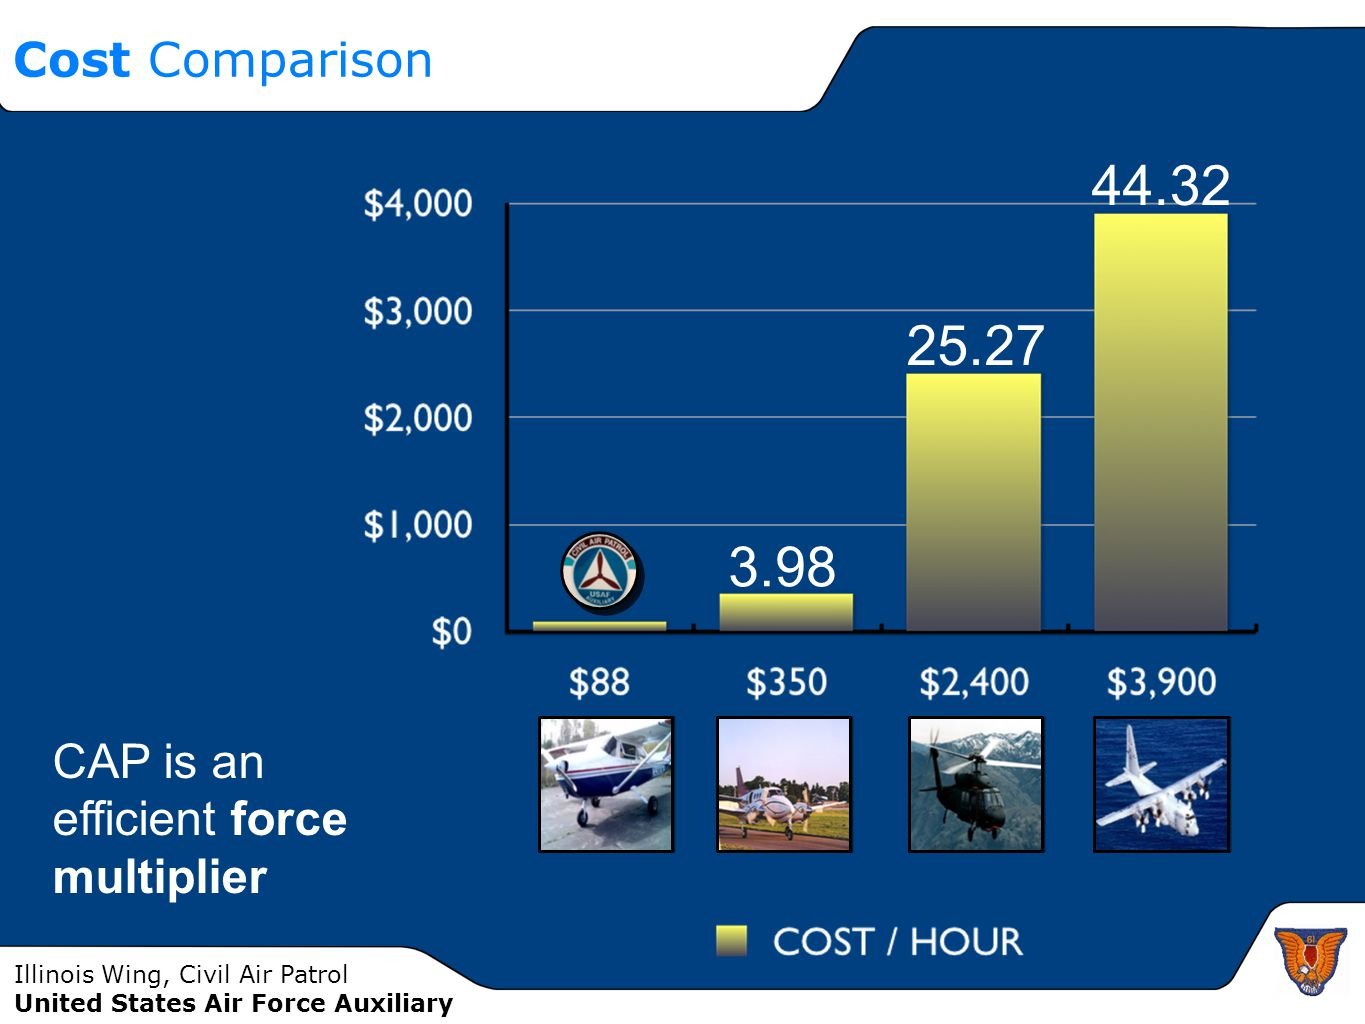 Illinois Wing, Civil Air Patrol United States Air Force Auxiliary Cost Comparison 3.98 25.27 44.32 CAP is an efficient force multiplier